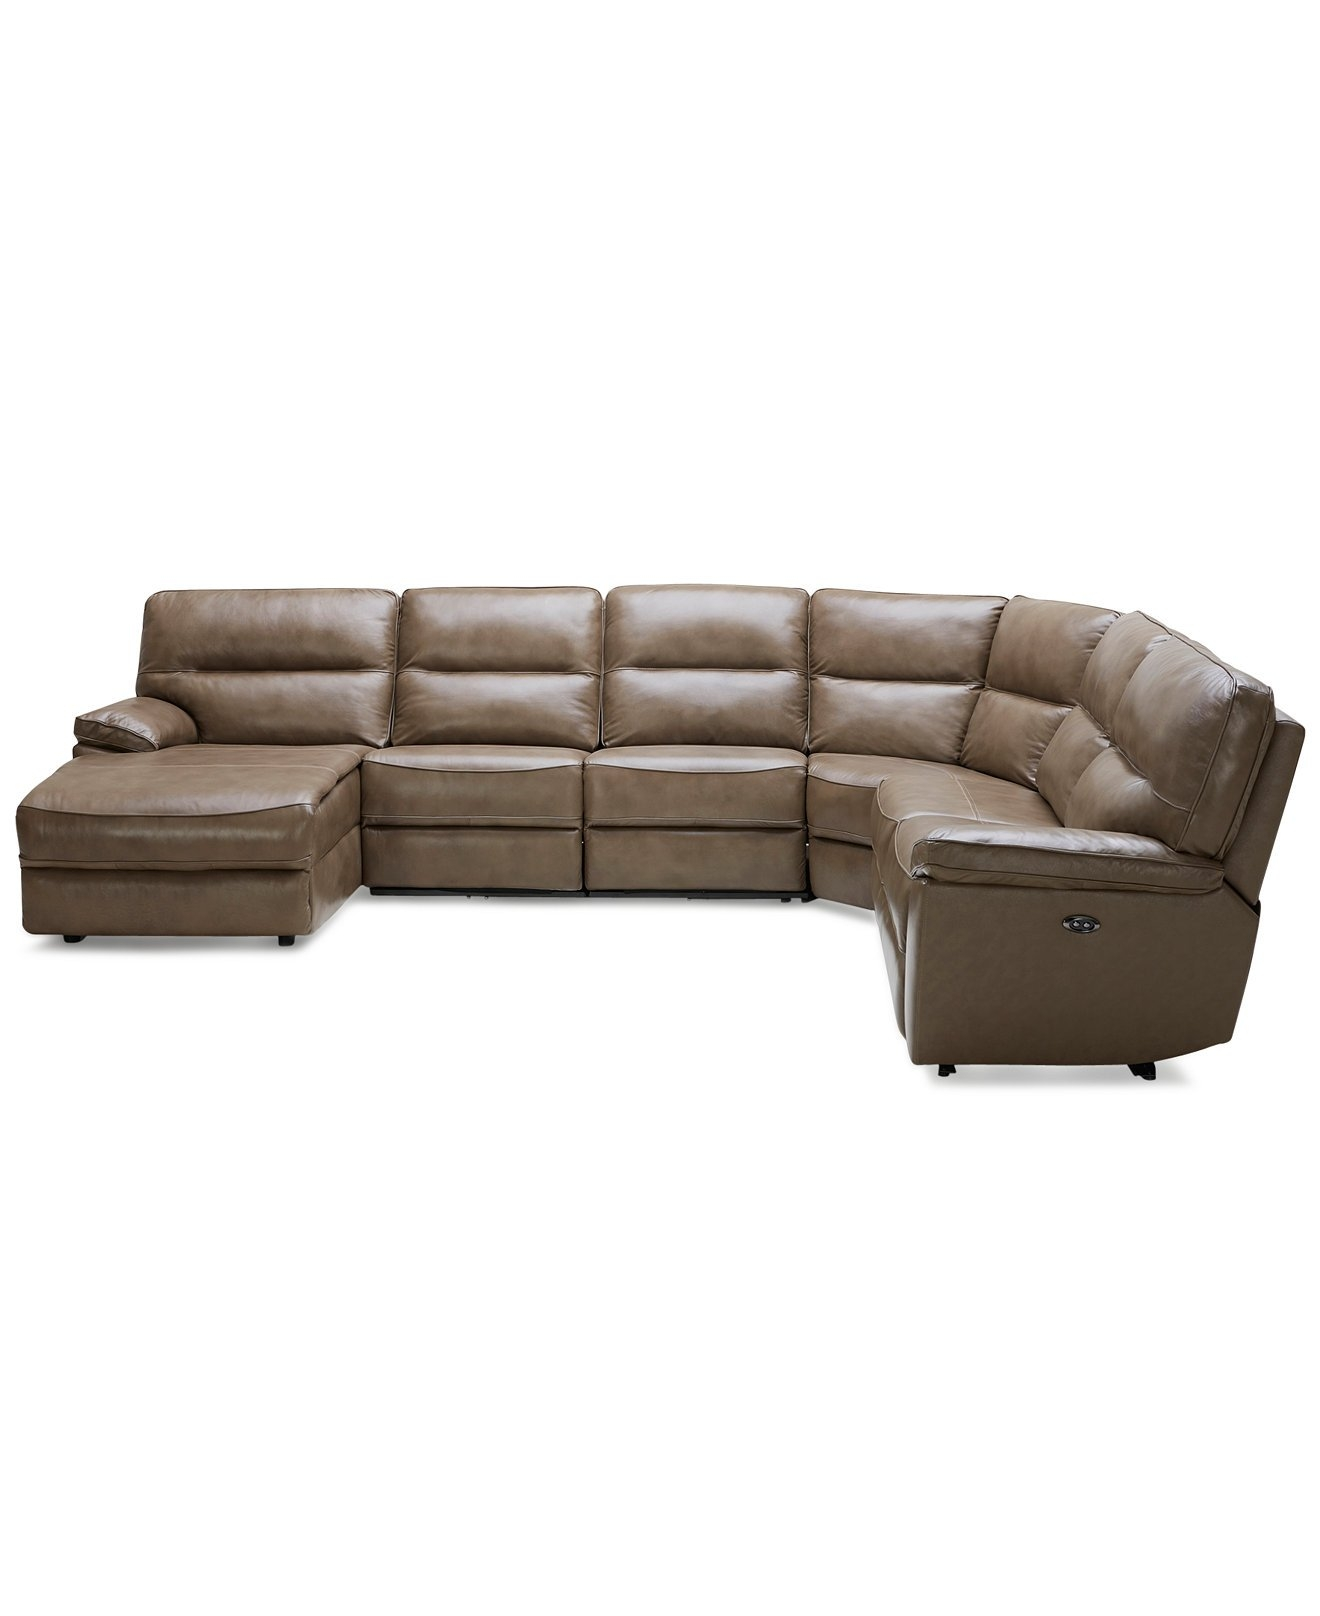 Macys Leather 6 Piece Power Reclining Sectional Sofa 3 Power In 6 Piece Leather Sectional Sofa (Image 6 of 15)